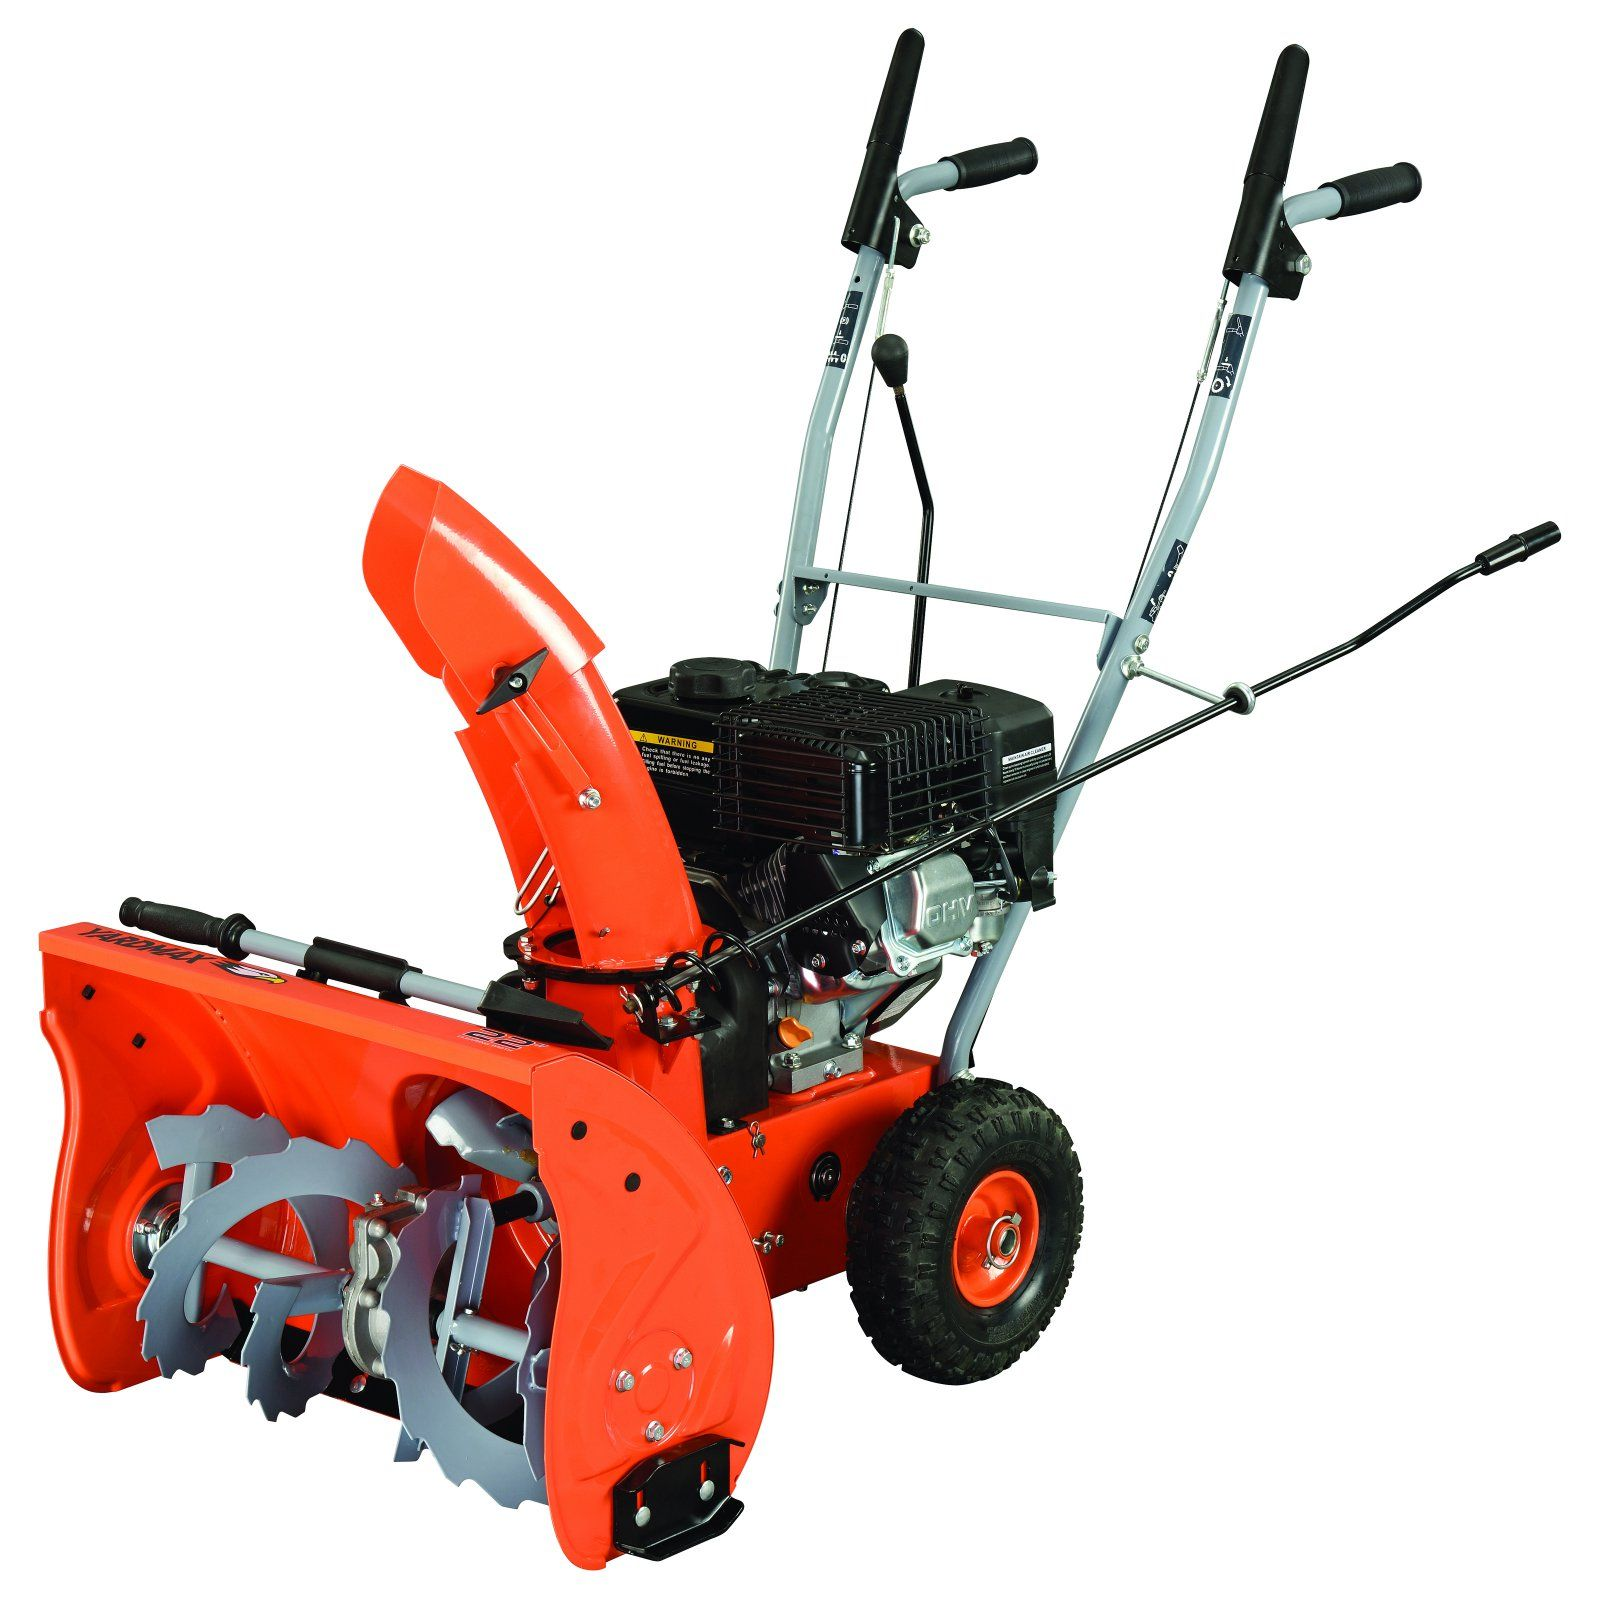 Recomeneded Single Stage Snow Thrower 961820017 Gas Snow Blower Snow Blower Blowers